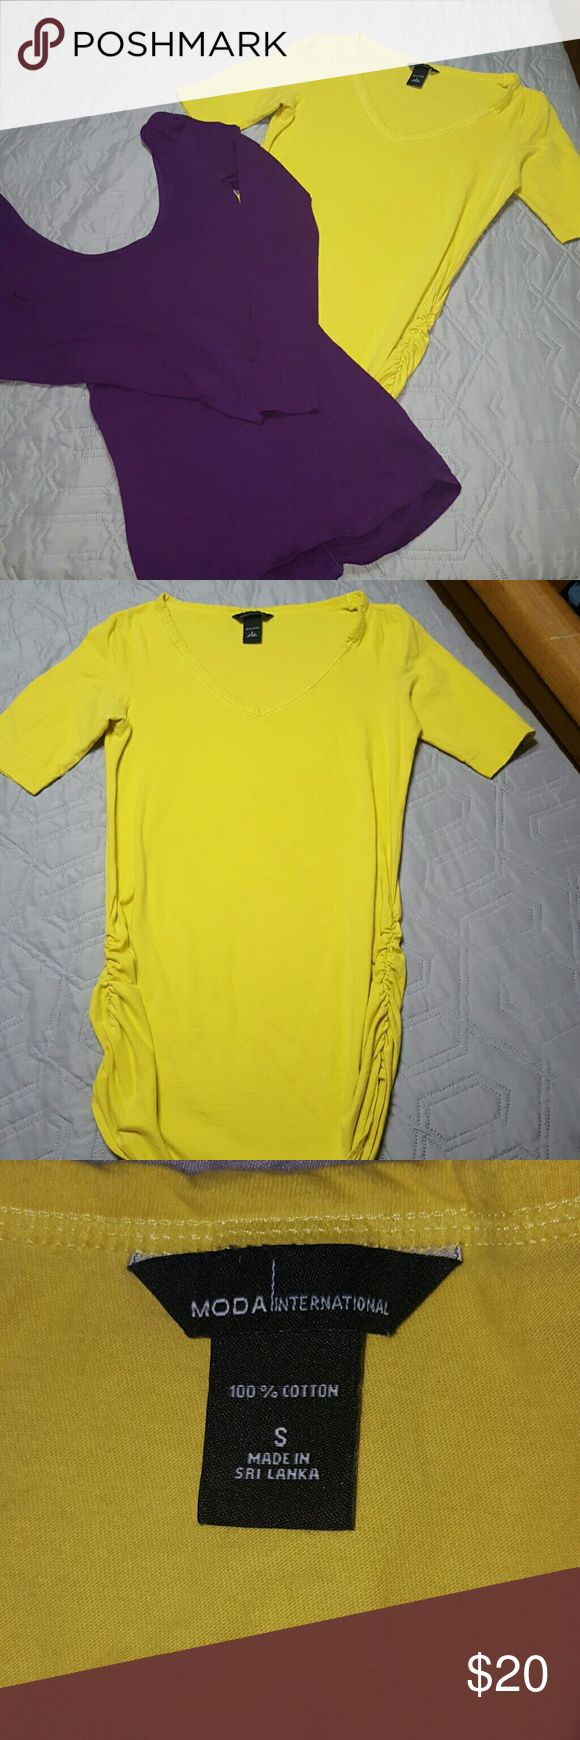 Victoria's Sectret Moda International Tunics Bundle of 2 tunics.  Both are size small. The yellow has a mid sleeve and side rushing.  The purple is a long sleeve, scoop neck and rushing along the back seem of top. Gently used and in great condition. Victoria's Secret Tops Tunics